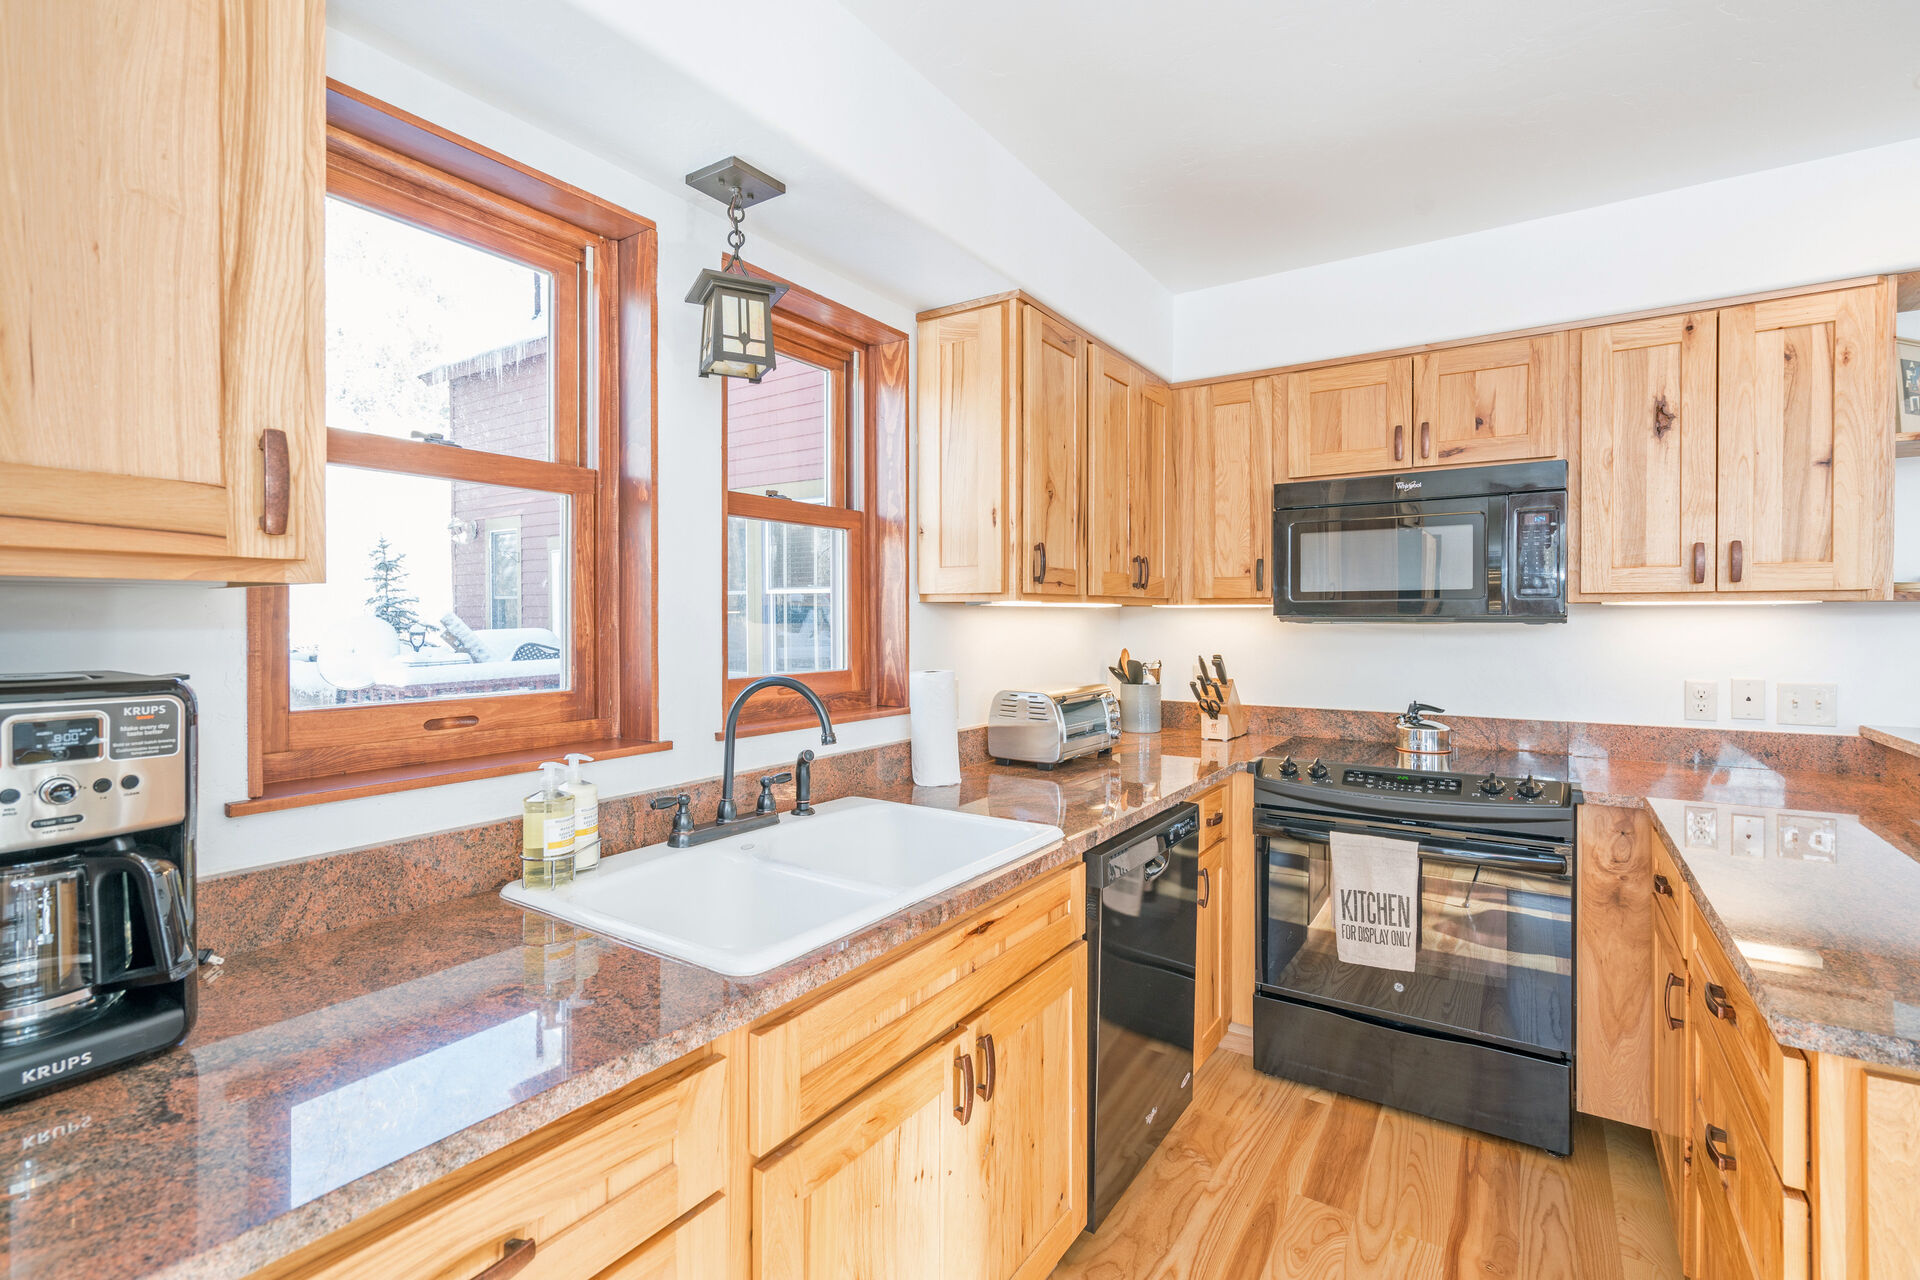 Kitchen with Microwave, Dishwasher, and Coffee Maker